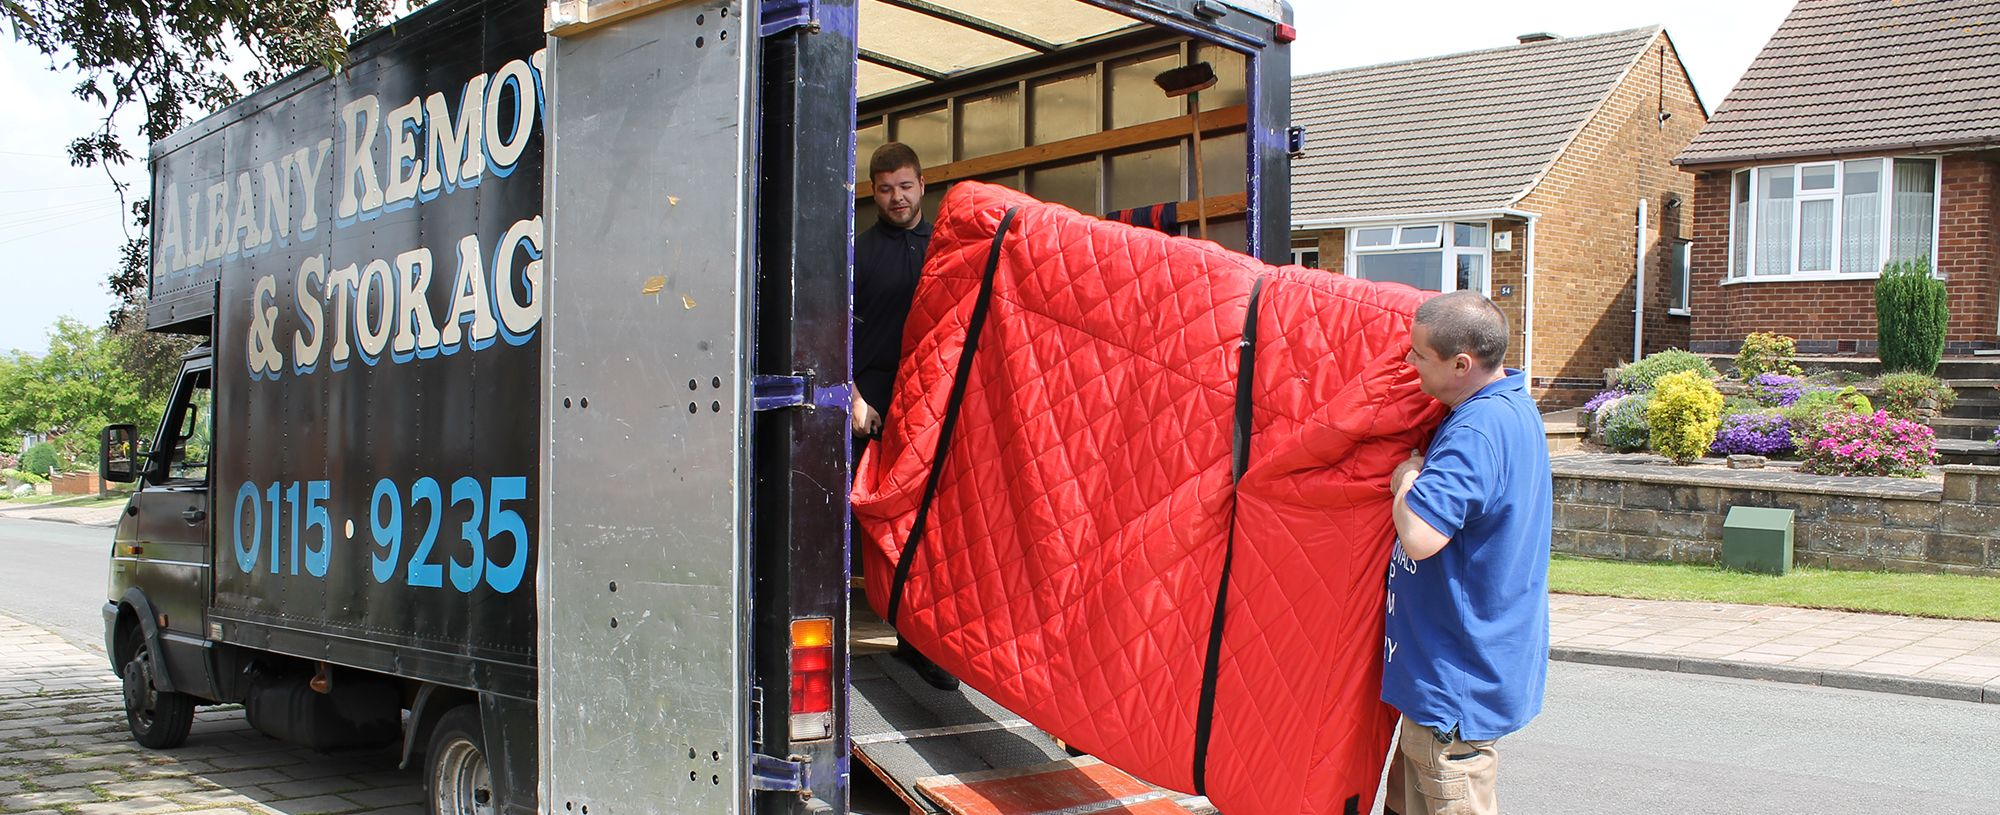 Cheap Removals Nottingham